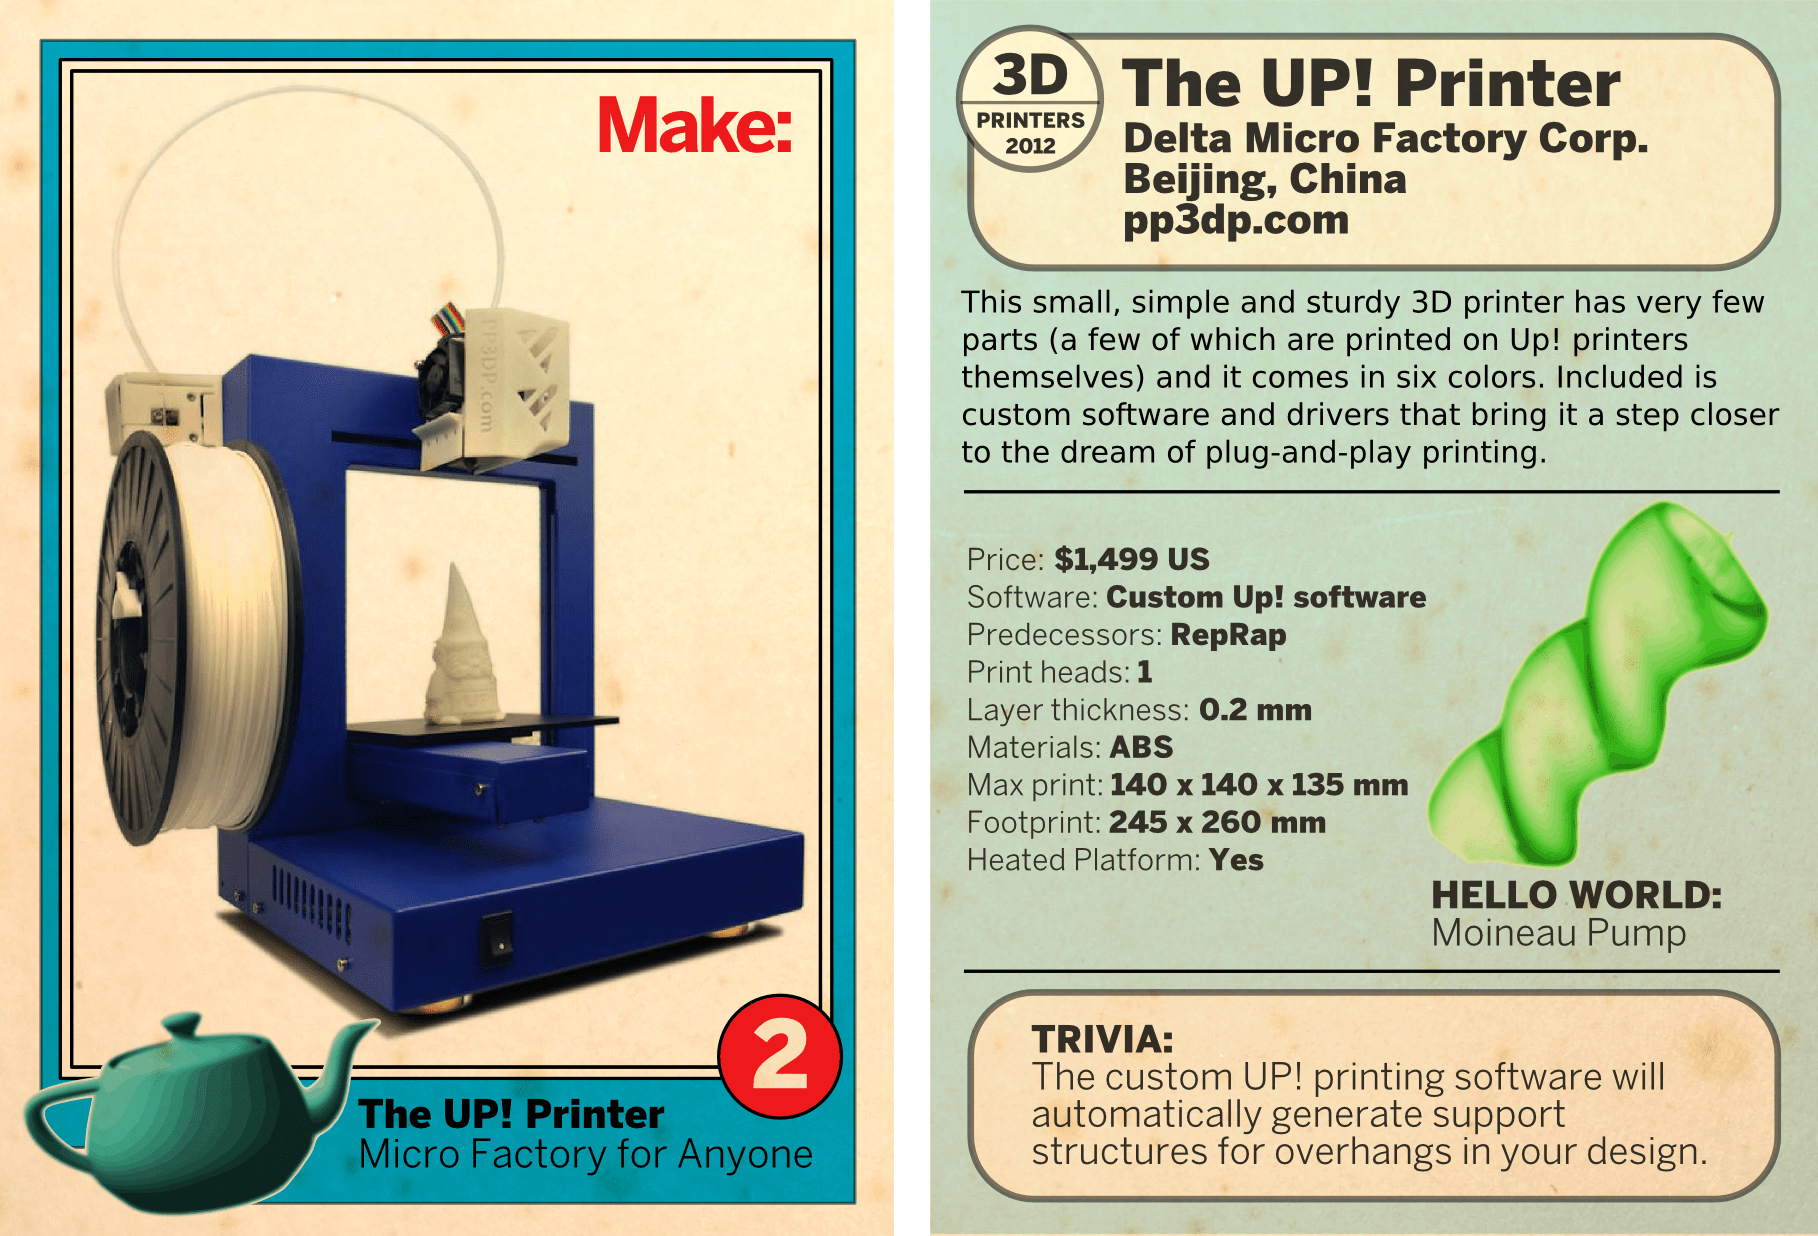 The Up! Printer